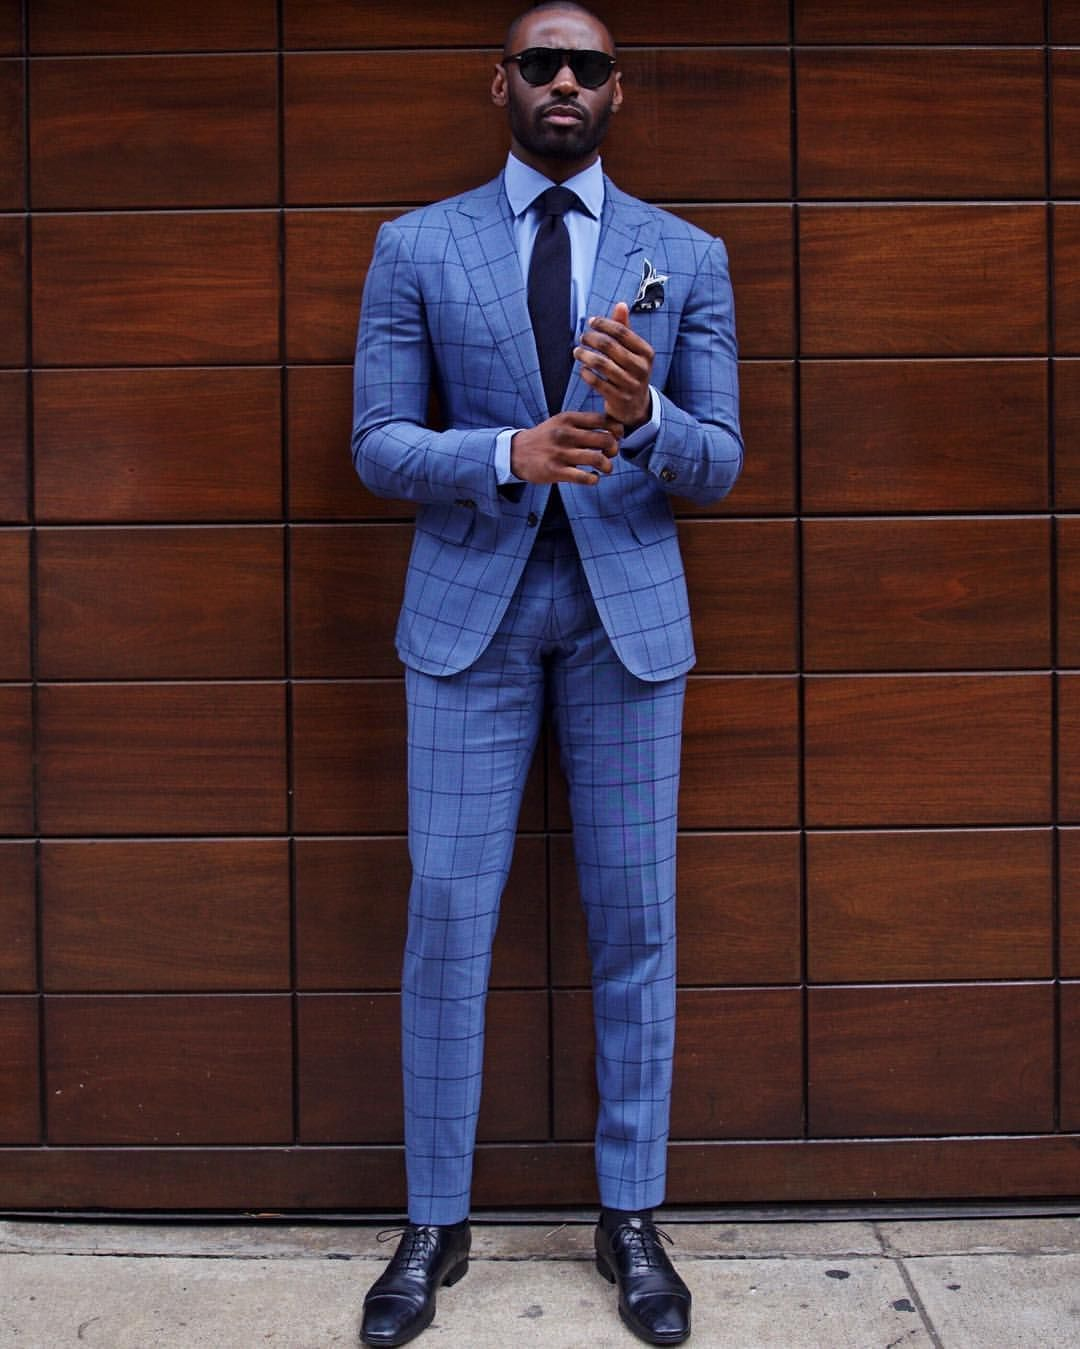 Davidson Petit Fr Re On Instagram You Can Have Anything In Life If You Dress For It Gentleman